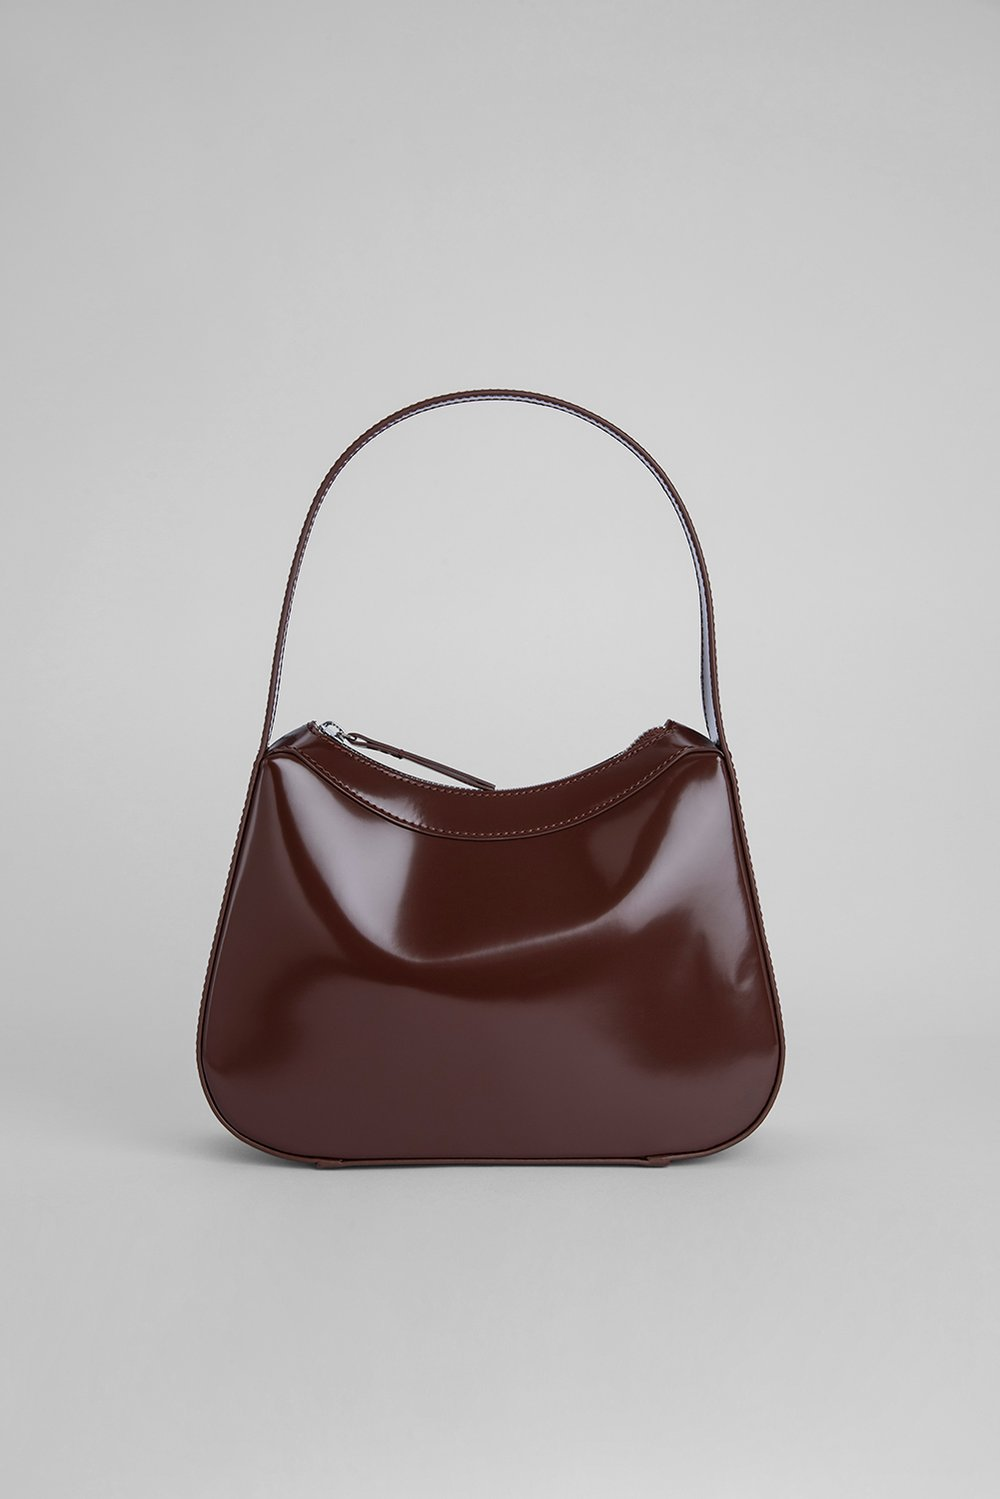 KIKI DARK BROWN SEMI PATENT LEATHER by BY FAR, available on byfar.com for $395 Hailey Baldwin Bags Exact Product